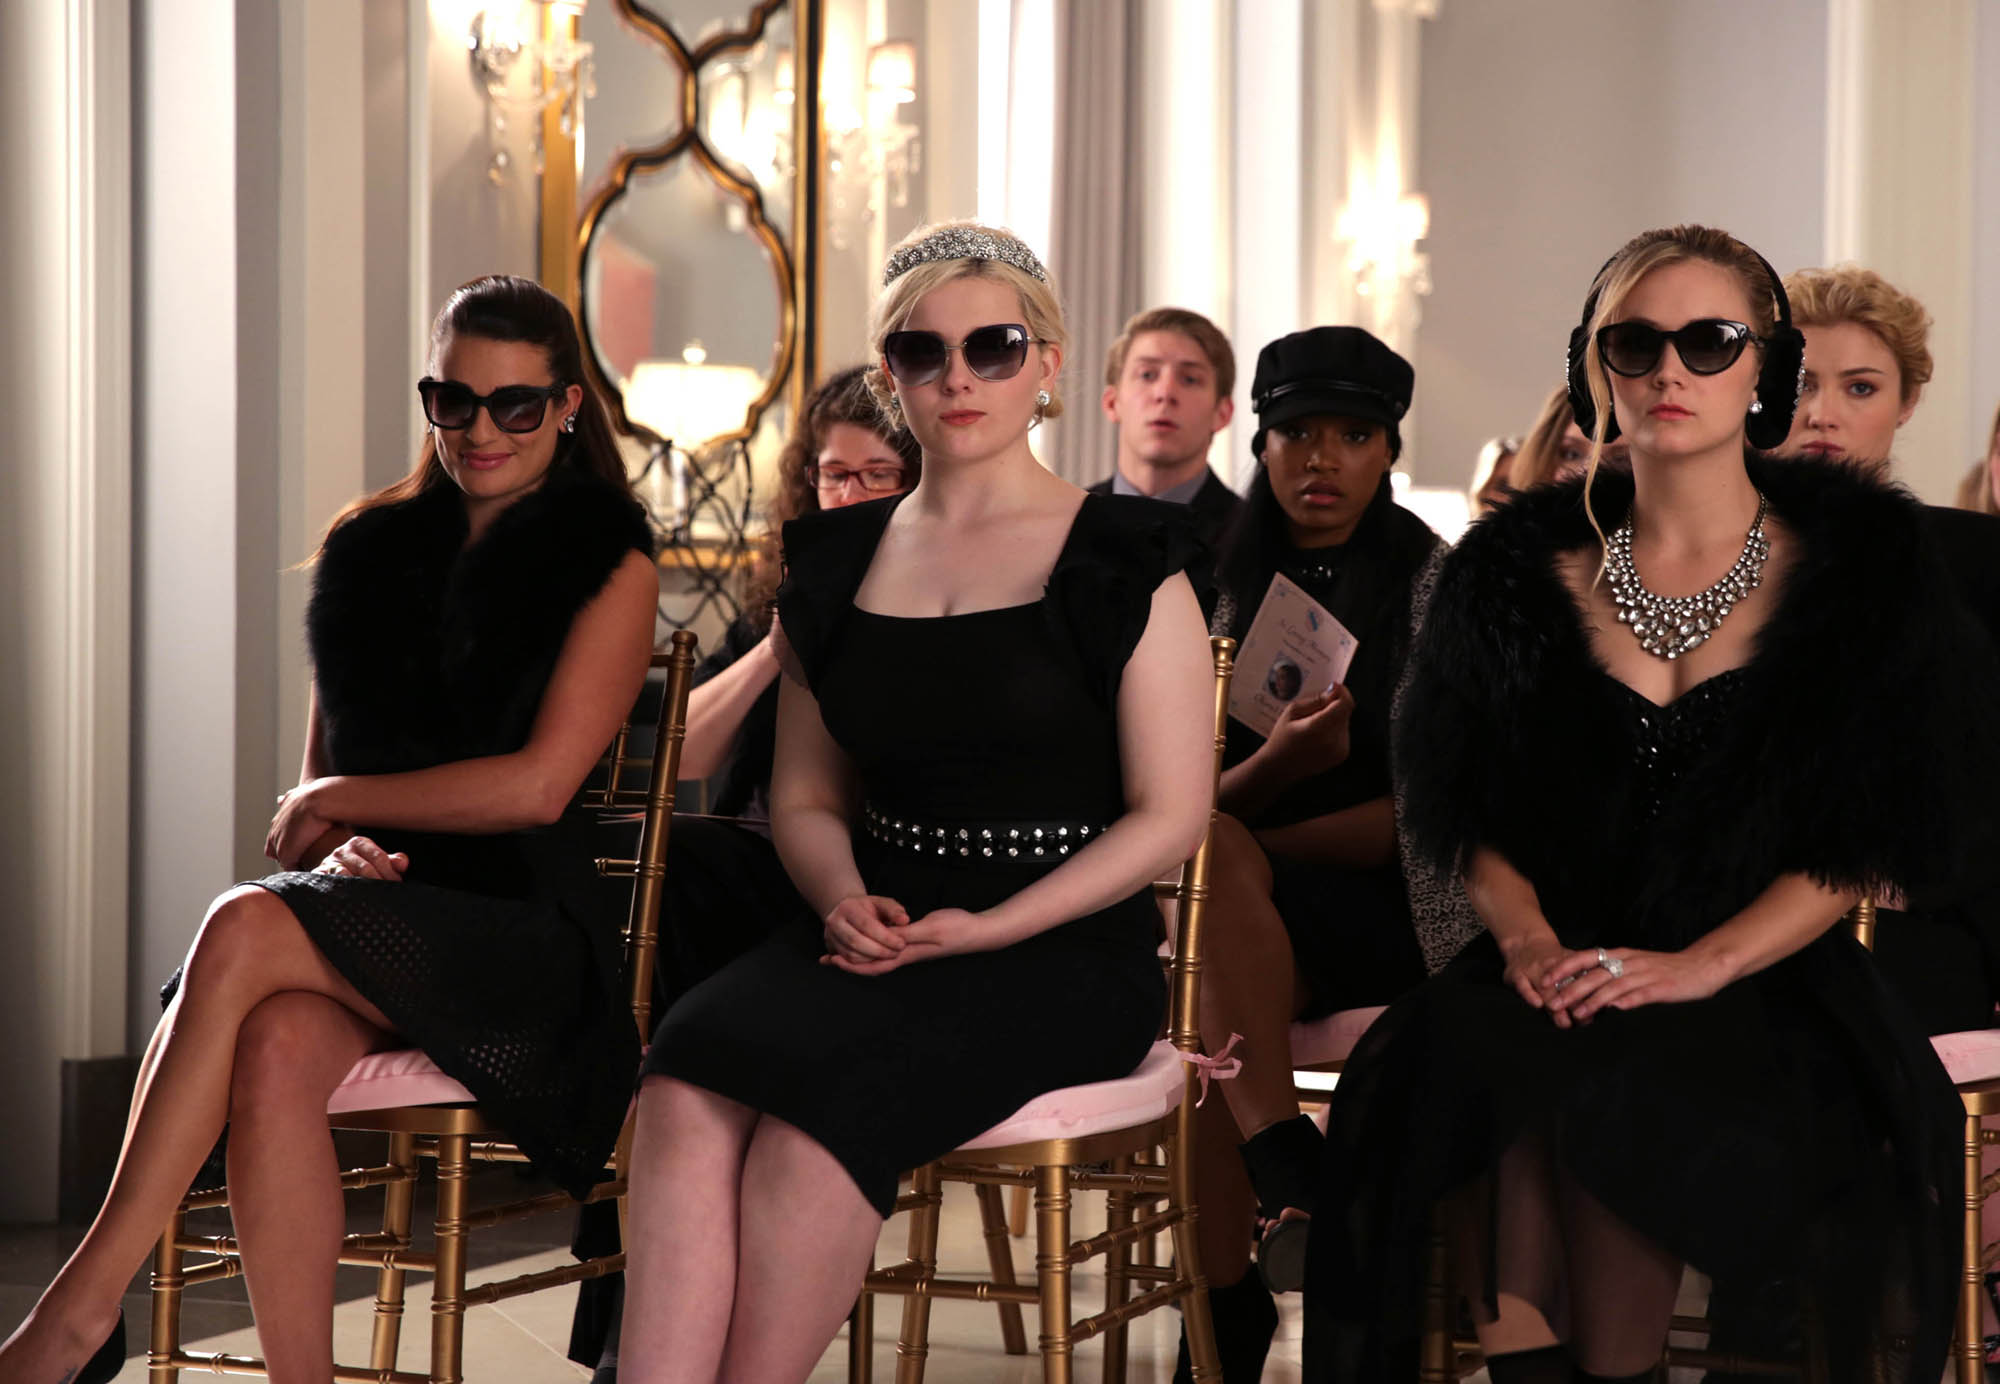 d6b347056a9 Abigail Breslin Hintergrund probably containing sunglasses titled Abigail  Breslin as Chanel 5   Libby Putney in